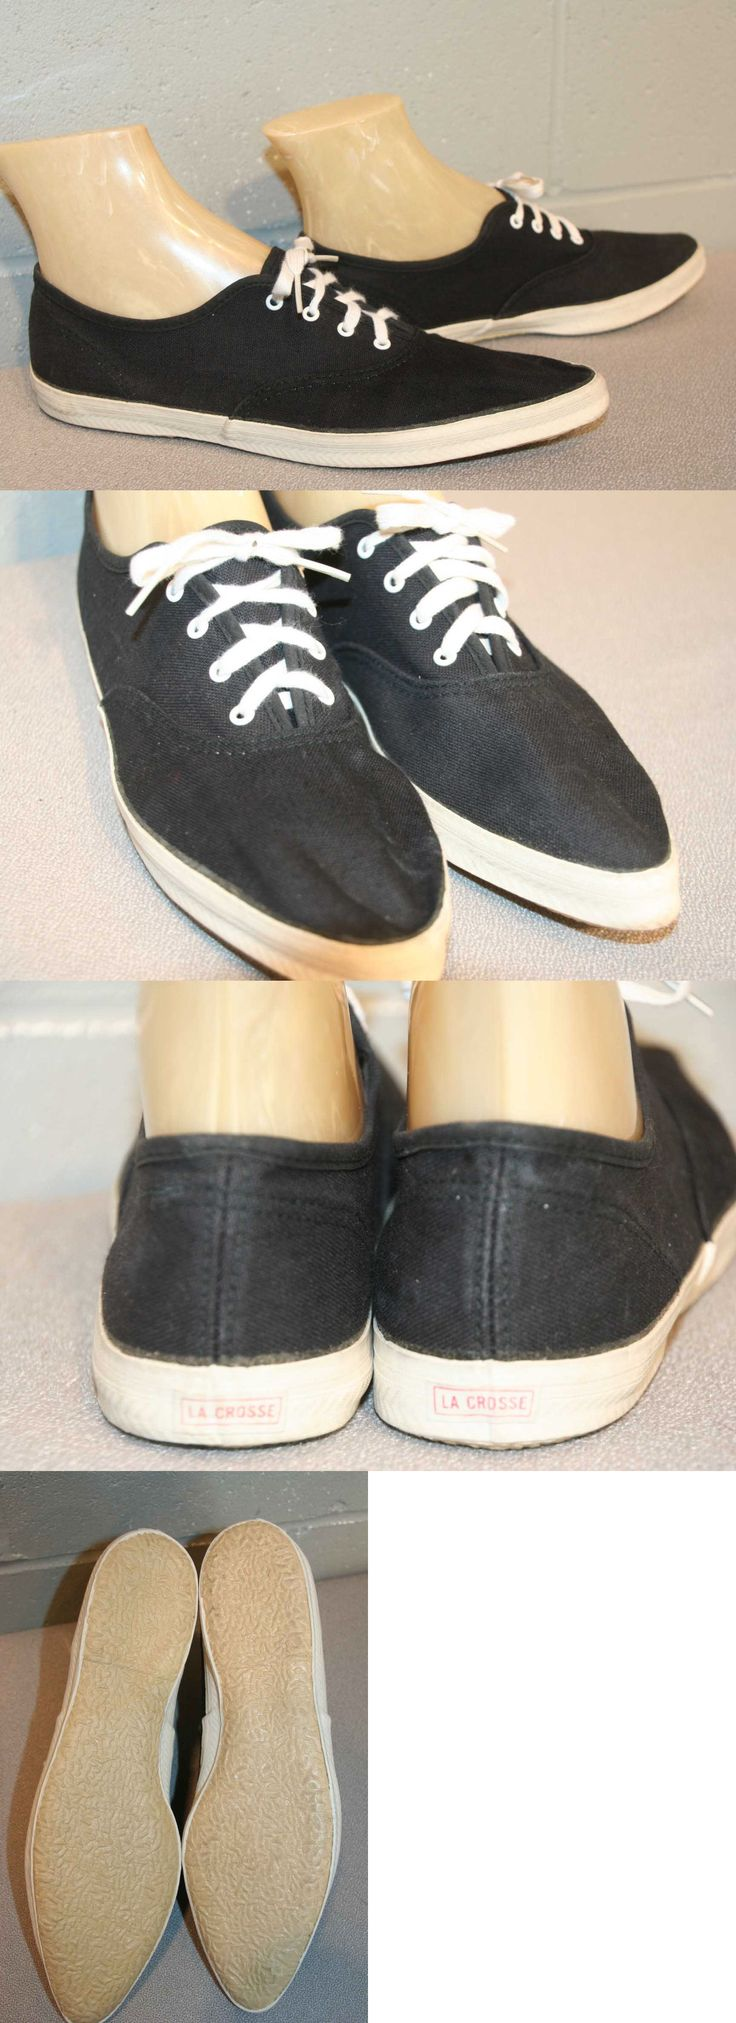 Womens Vintage Shoes 74976: 8.5 Nos Vtg 60S 70S Black La Crosse Tennis Sneaker Canvas Hipster Pointed Shoe -> BUY IT NOW ONLY: $36 on eBay!